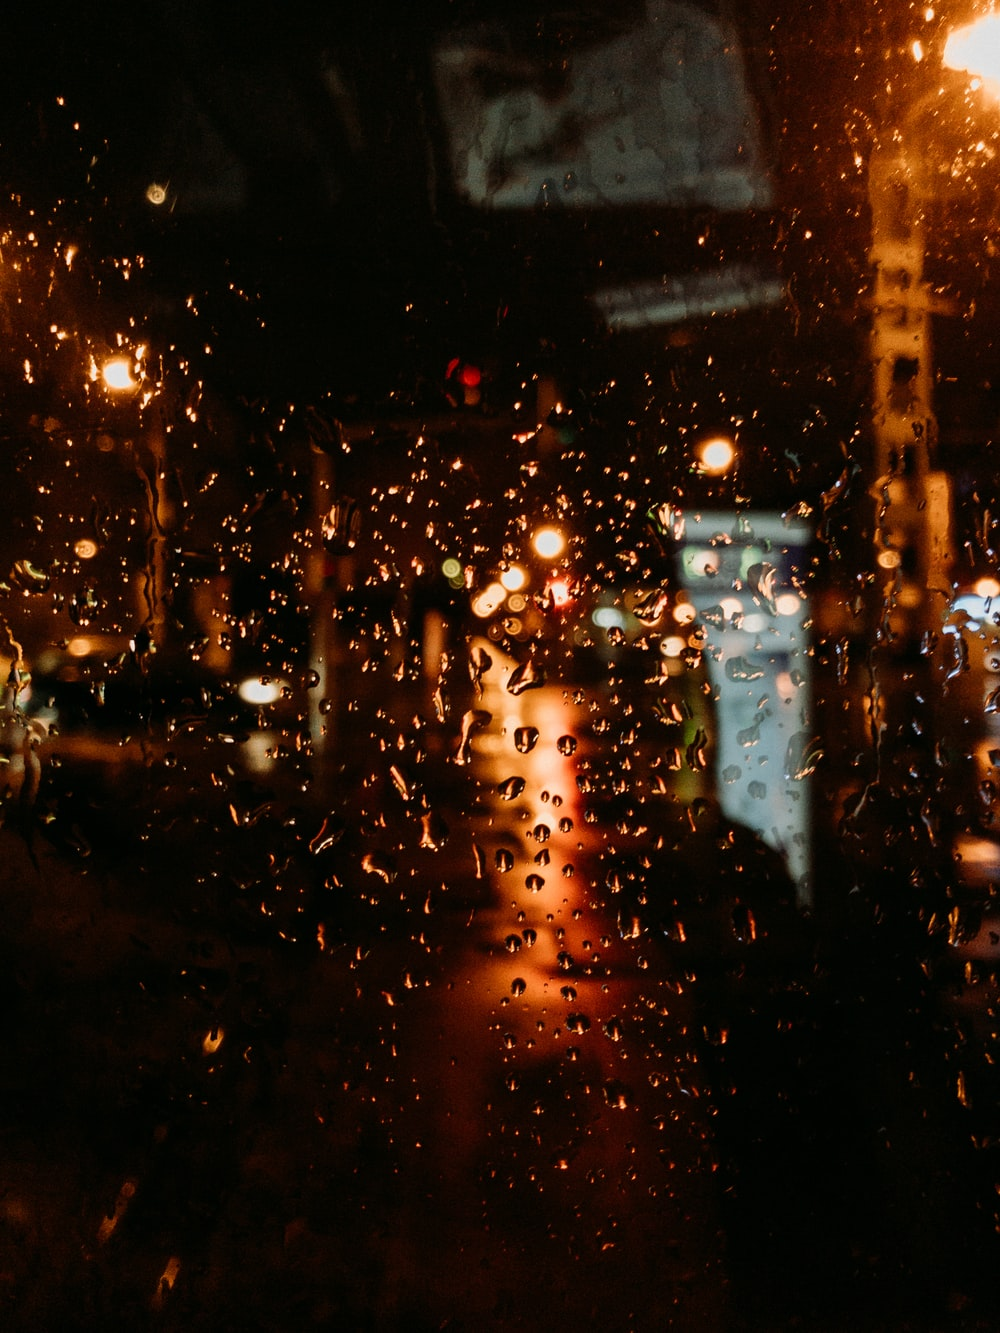 water droplets on glass window during night time